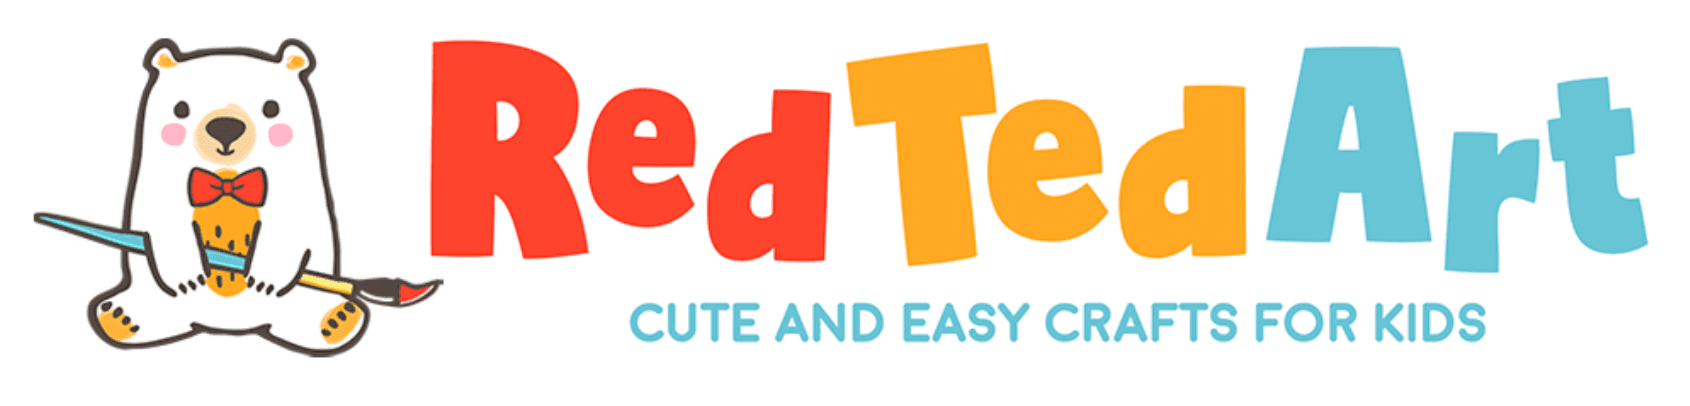 Red Ted Art logo